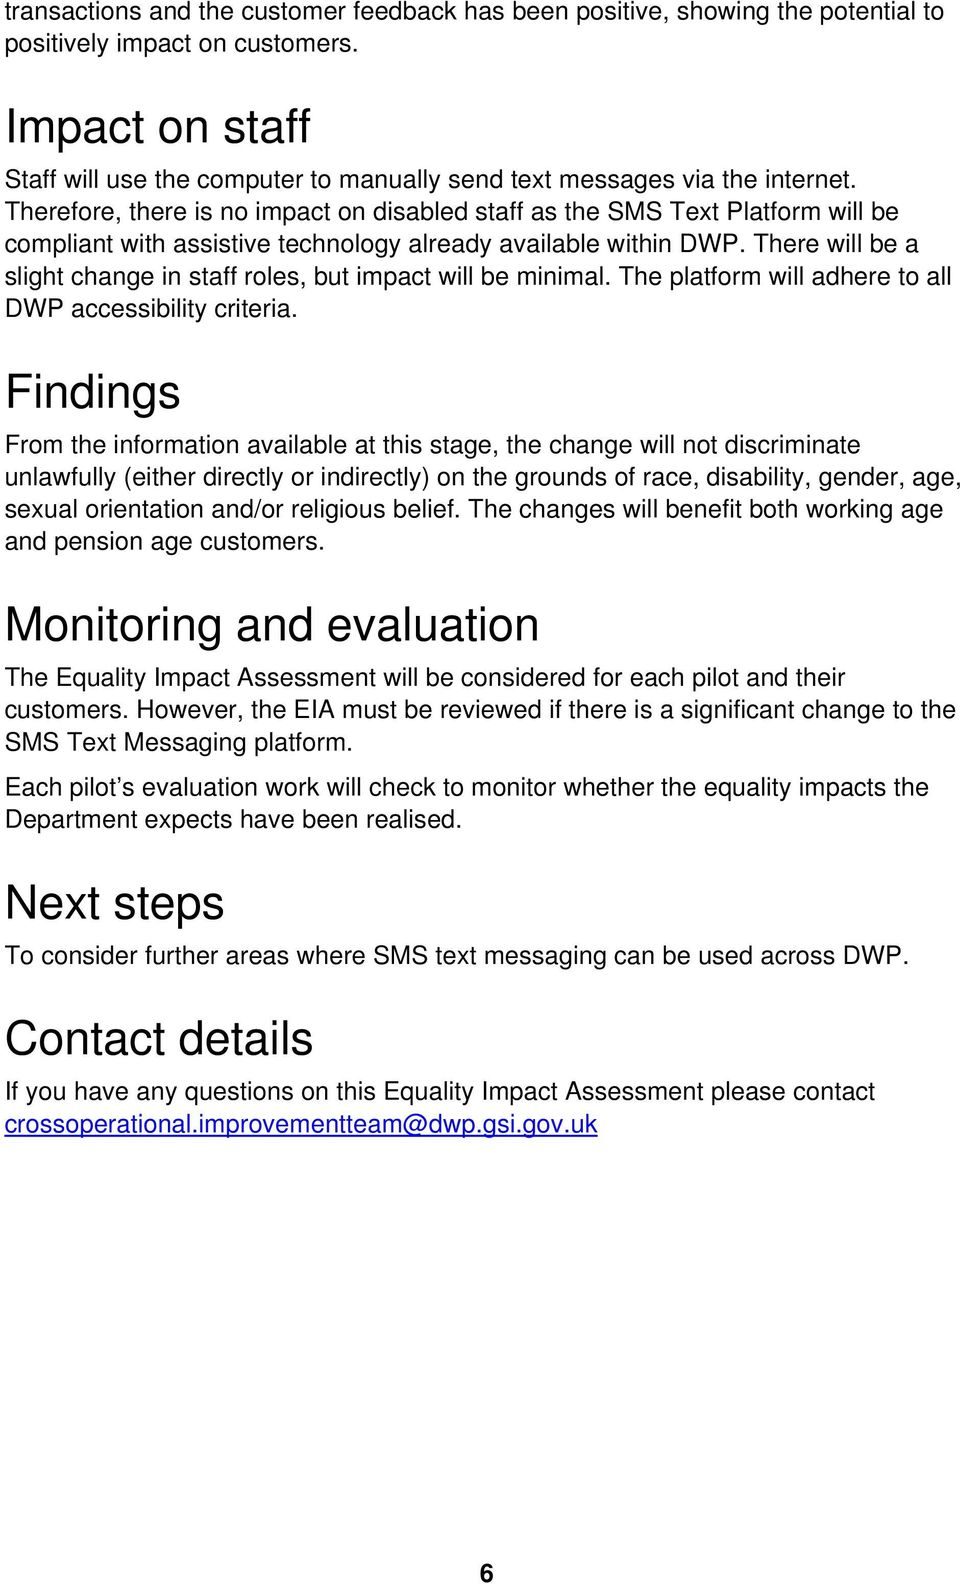 Therefore, there is no impact on disabled staff as the SMS Text Platform will be compliant with assistive technology already available within DWP.